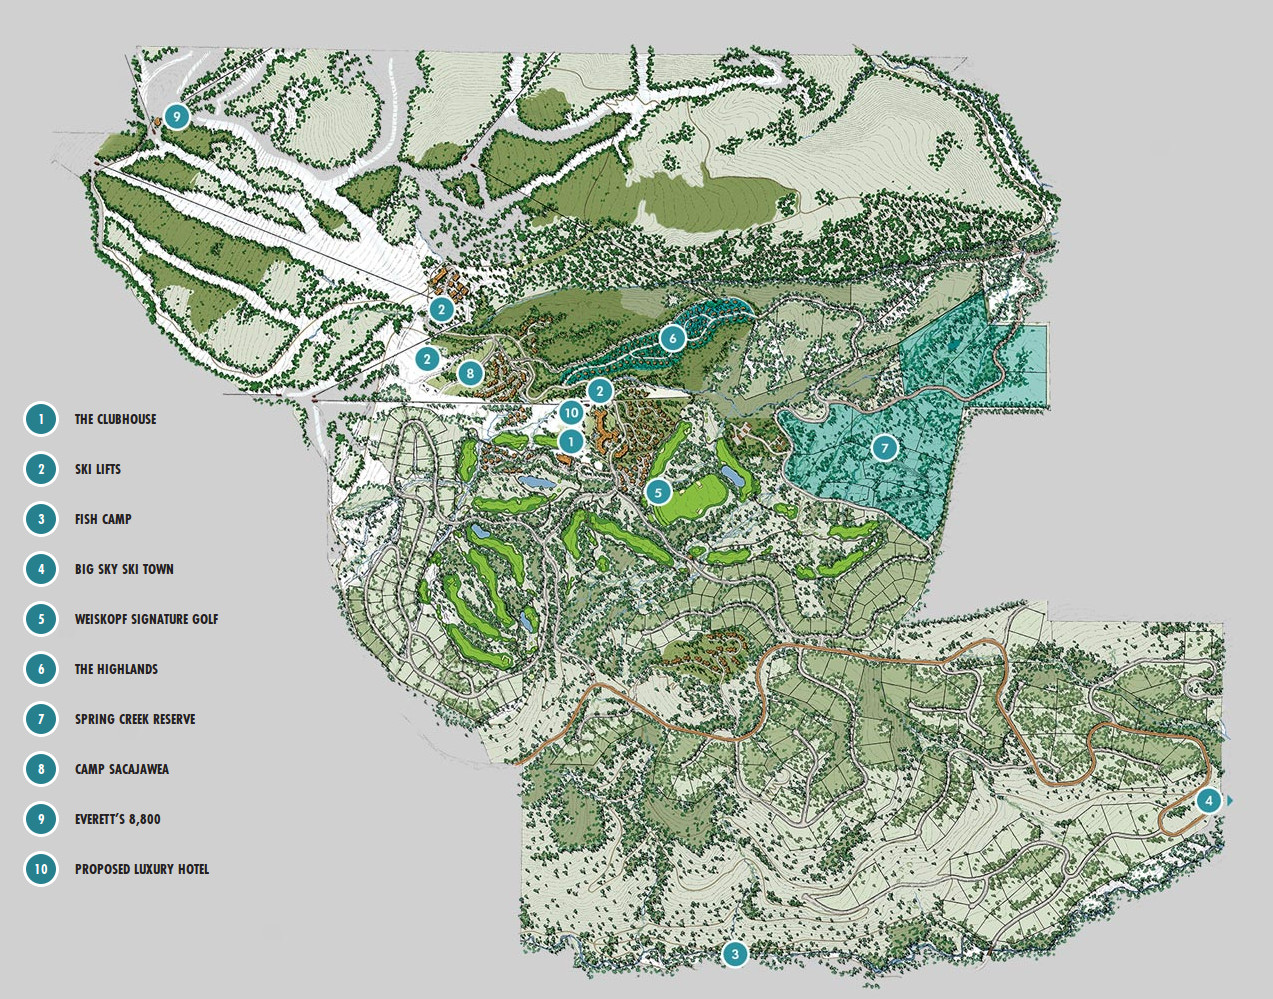 Spanish Peaks Mountain Club - Big Sky Real Estate Group on missoula map, united states map, montana map, big sky resort map, big sky mountain village map, new york map, lost trail powder mountain map, alpe d'huez map, bozeman map, google map, sugarloaf map, utah map,